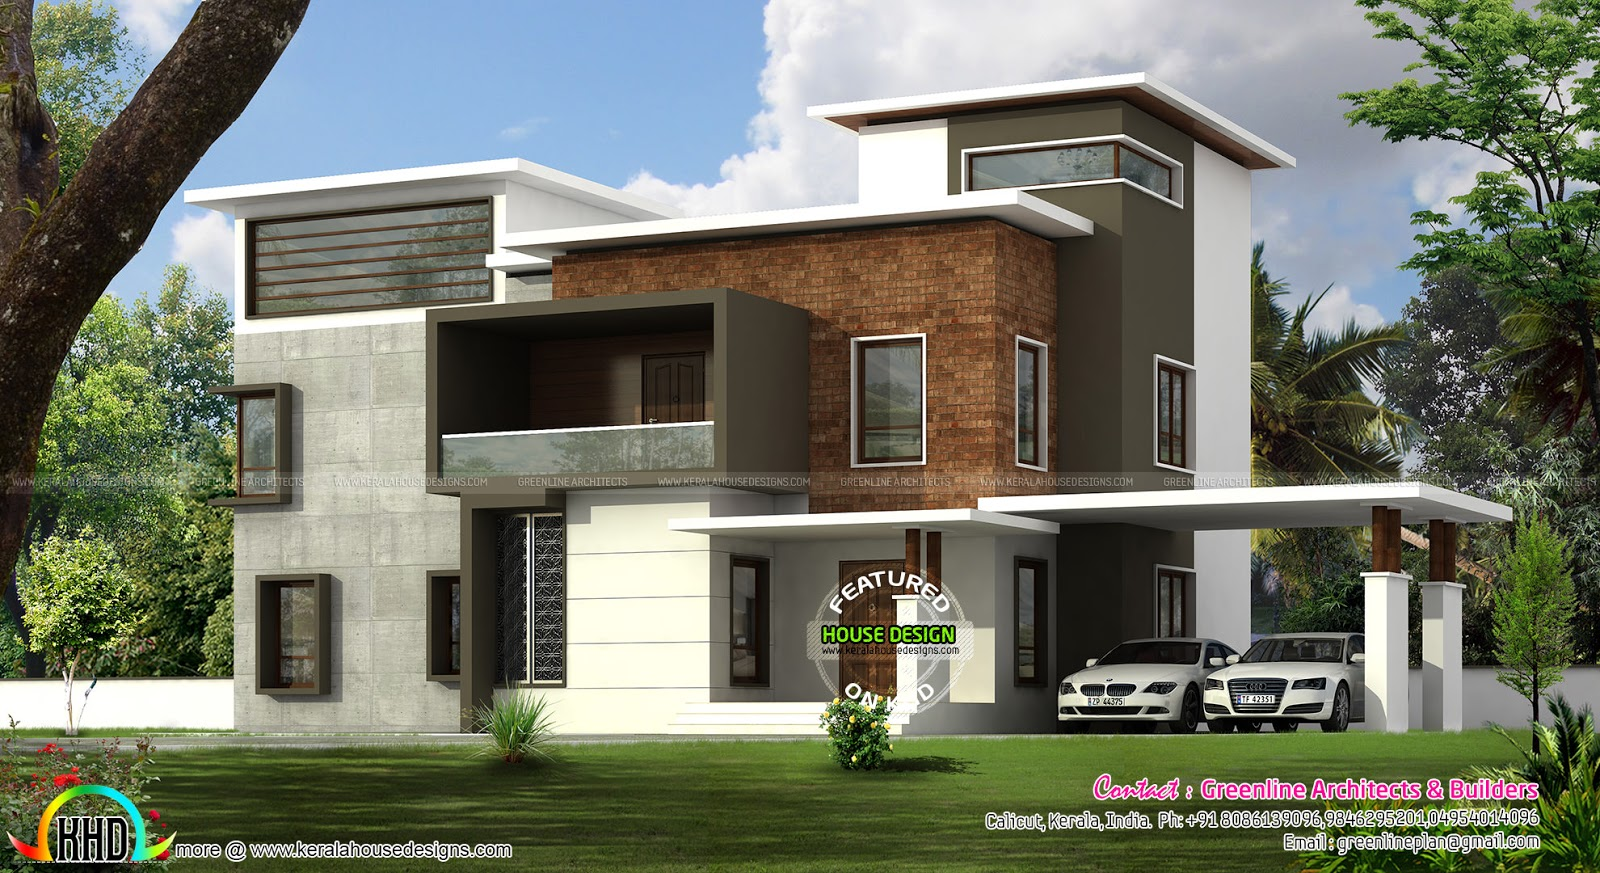 3098 sq ft box type home plan kerala home design and for Modern box type house design